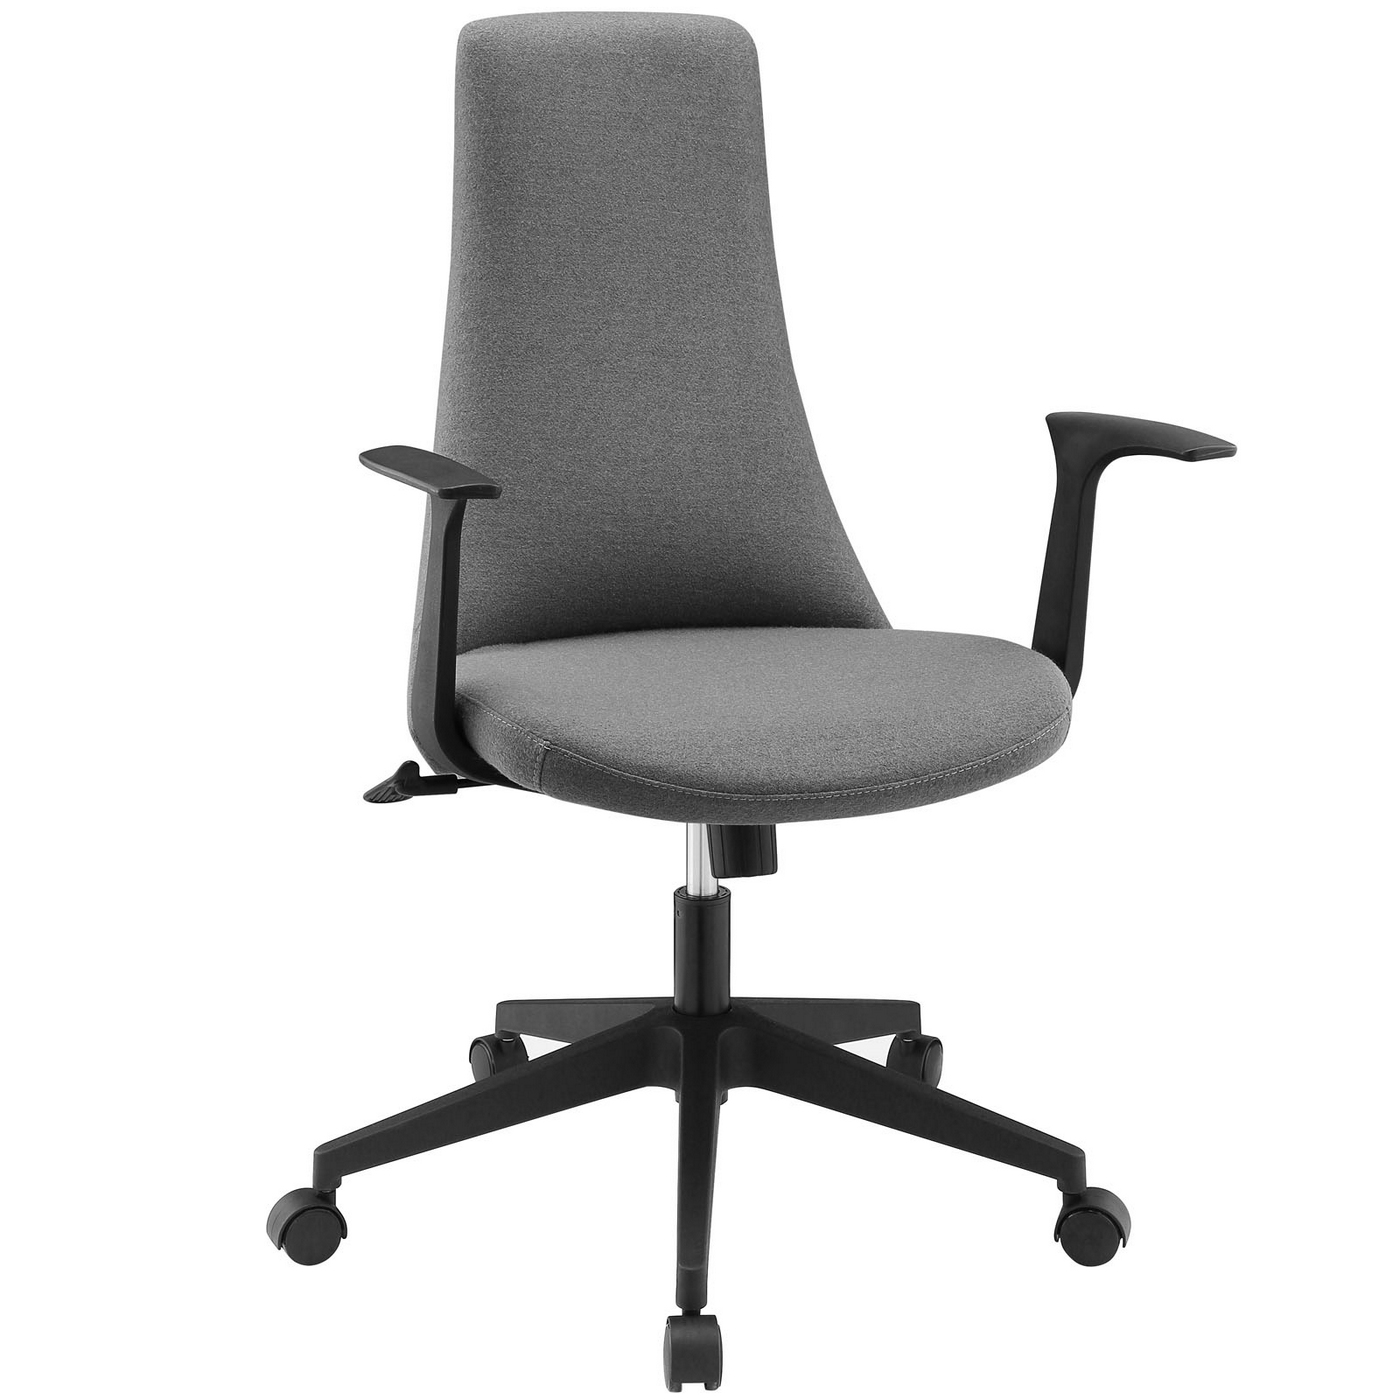 Fount Modern Mid Back Upholstered Office Chair With Nylon